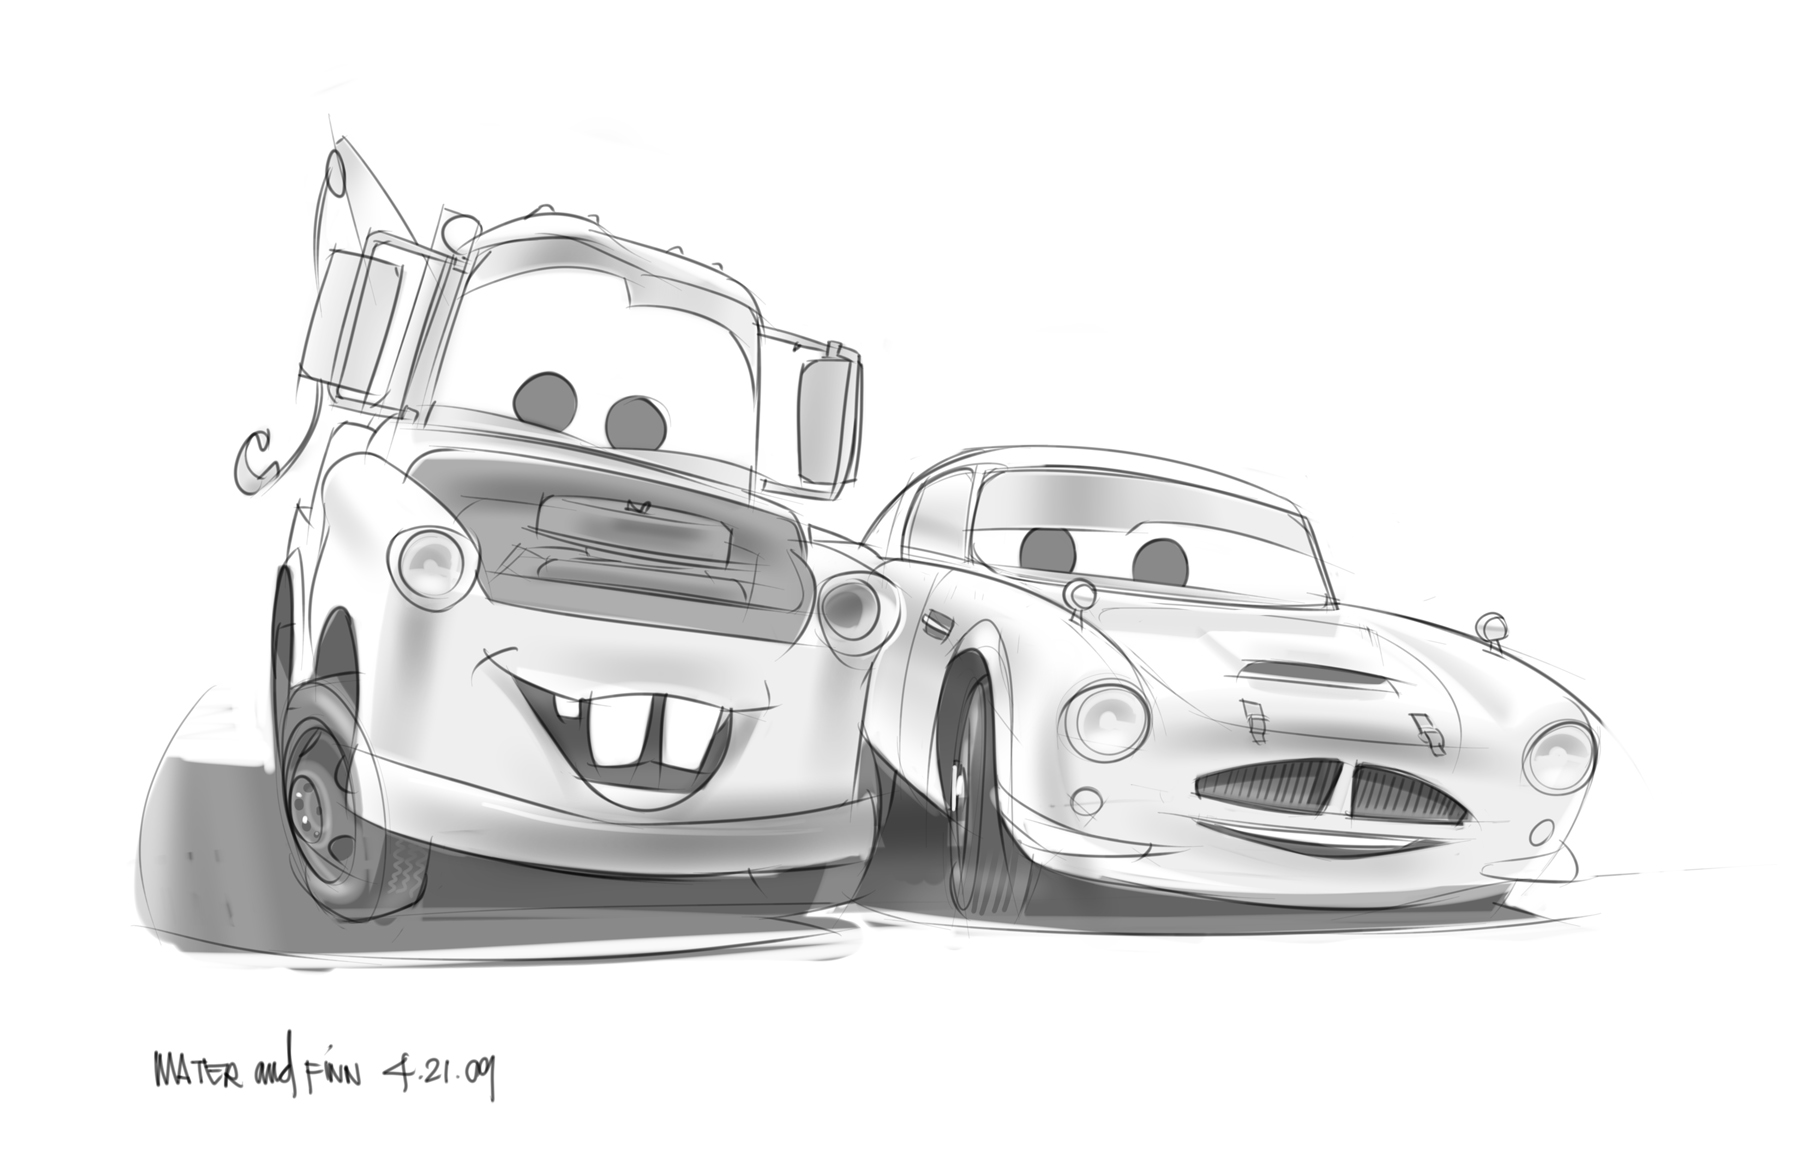 cars 2 character design finn mcmissile